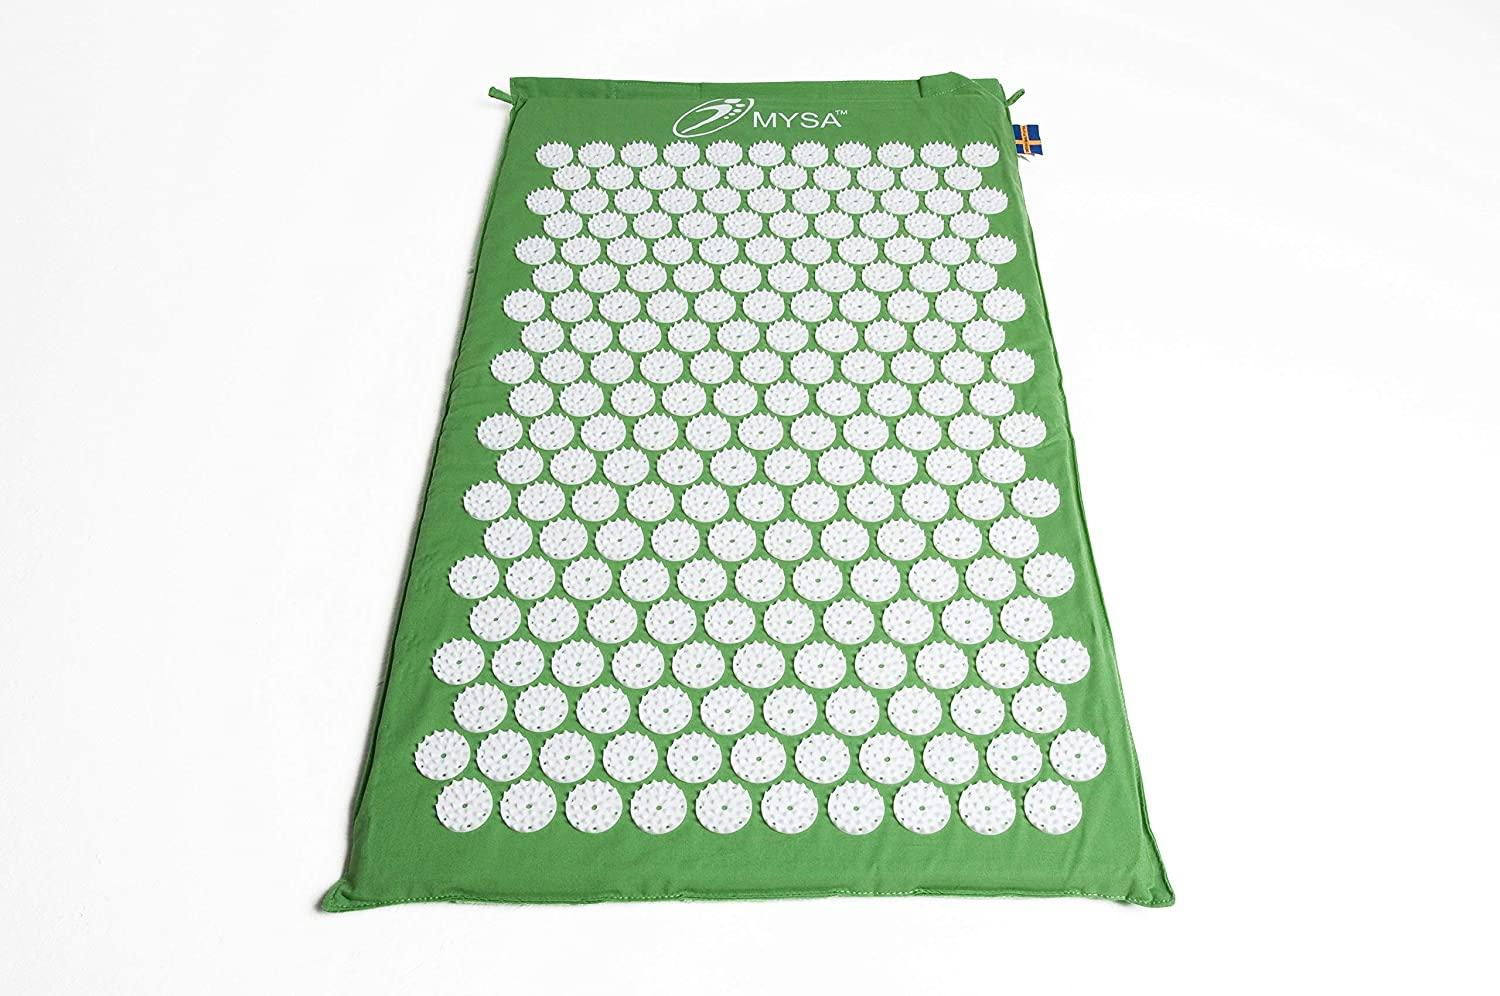 tapis d acupression Mysa